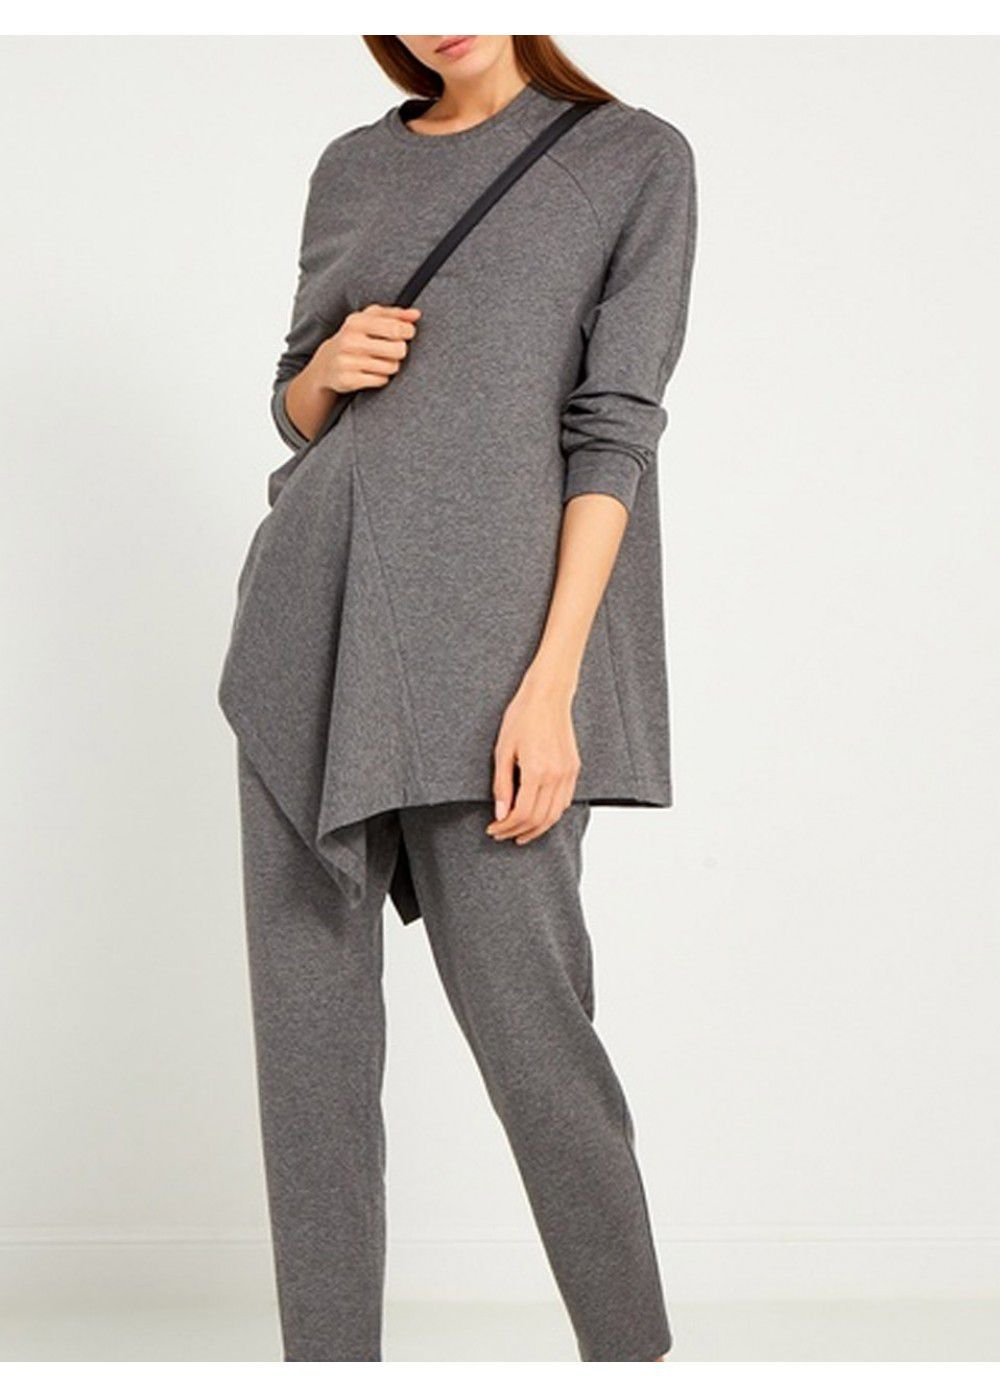 Ruban Mottled Sweatshirt in Grey